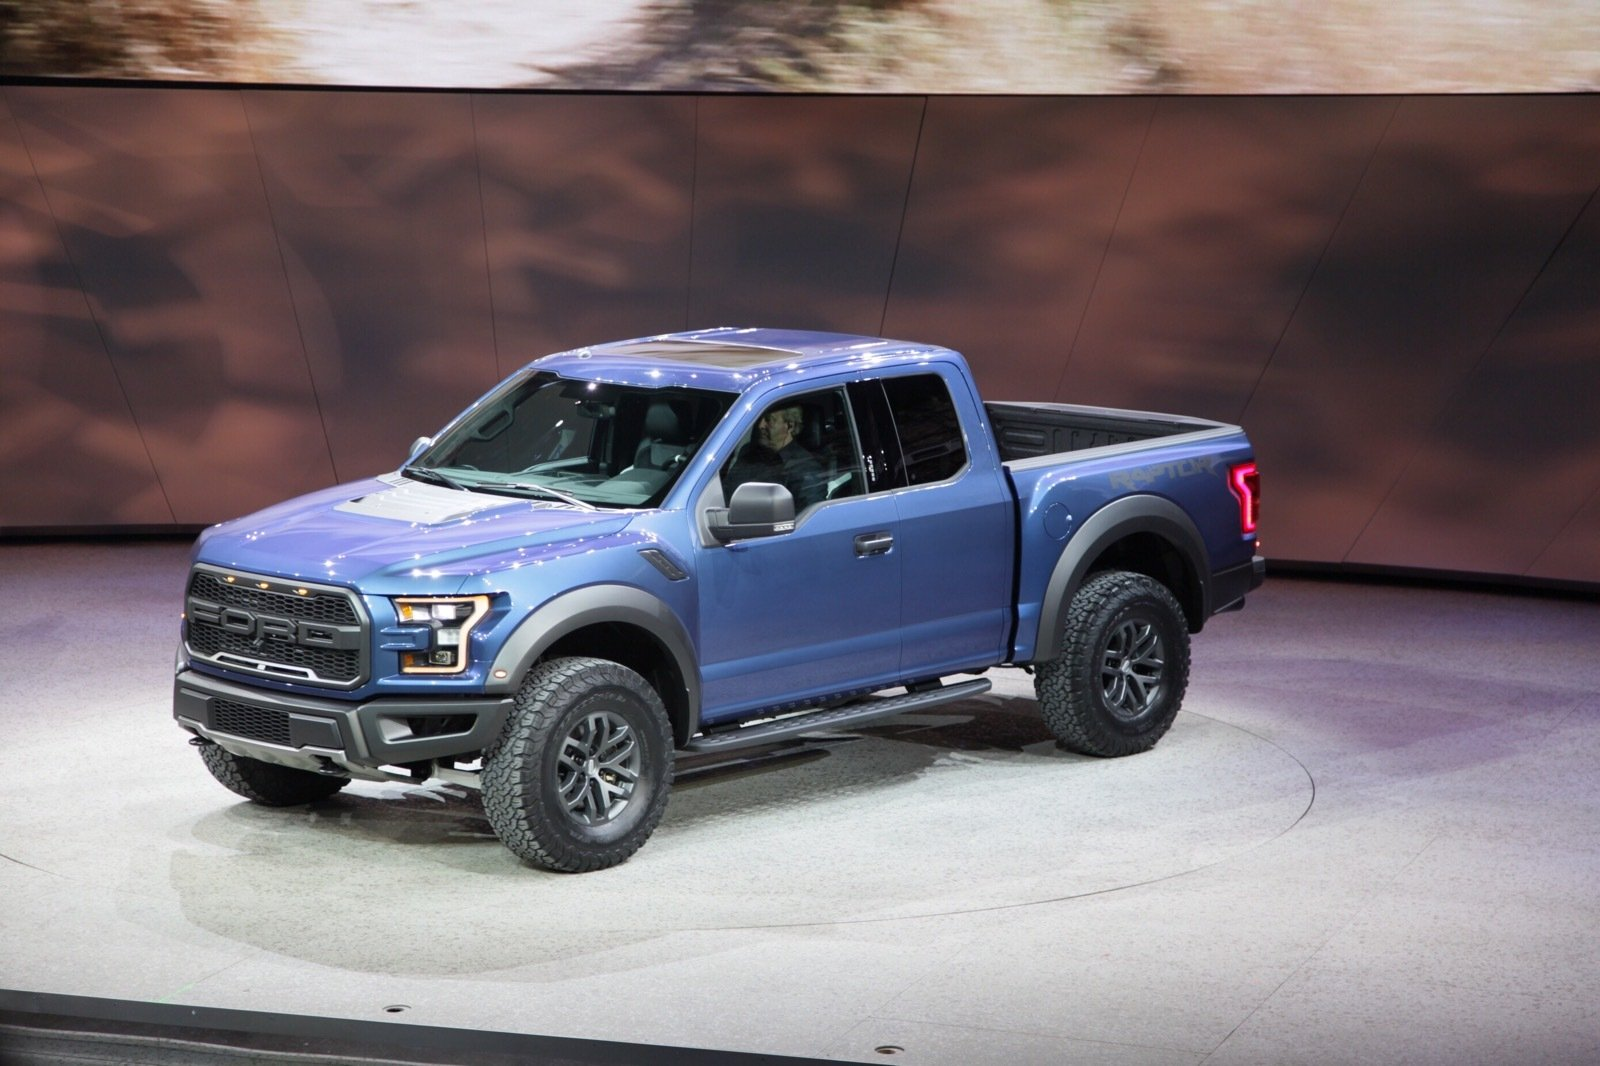 2017 ford f 150 raptor picture 610306 truck review top speed. Black Bedroom Furniture Sets. Home Design Ideas